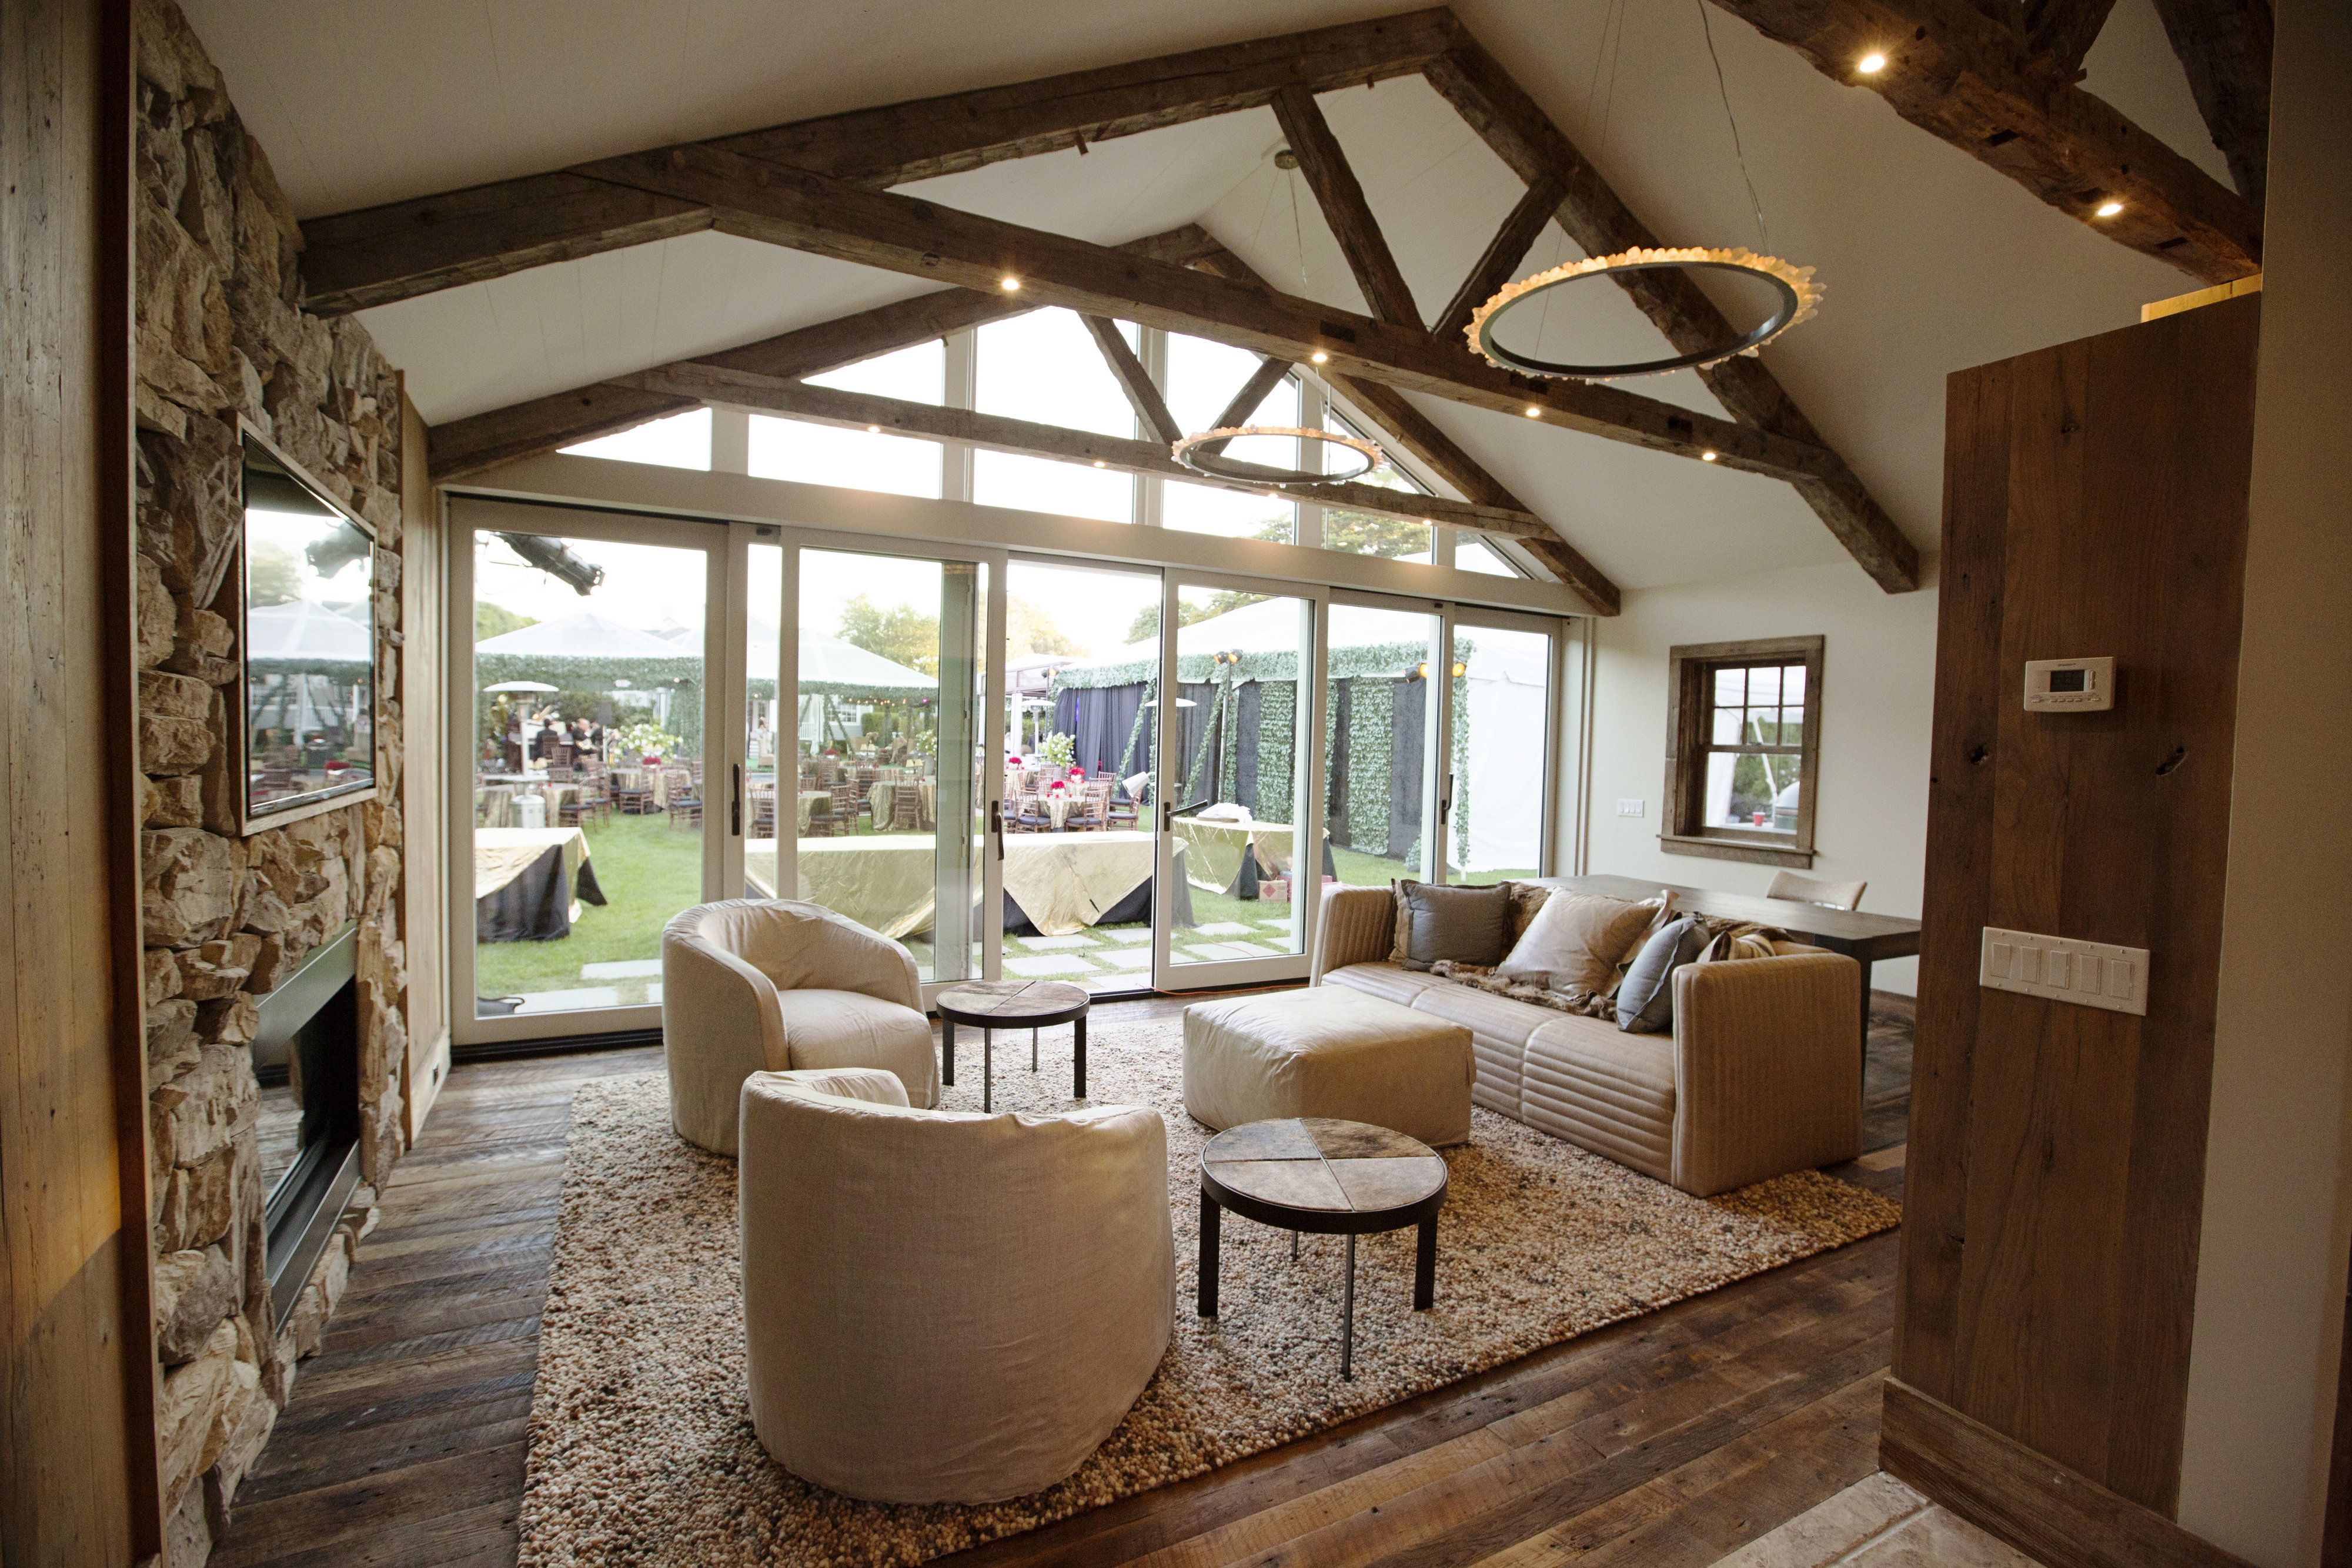 Art barn project by leighton design group rustic home inspiration